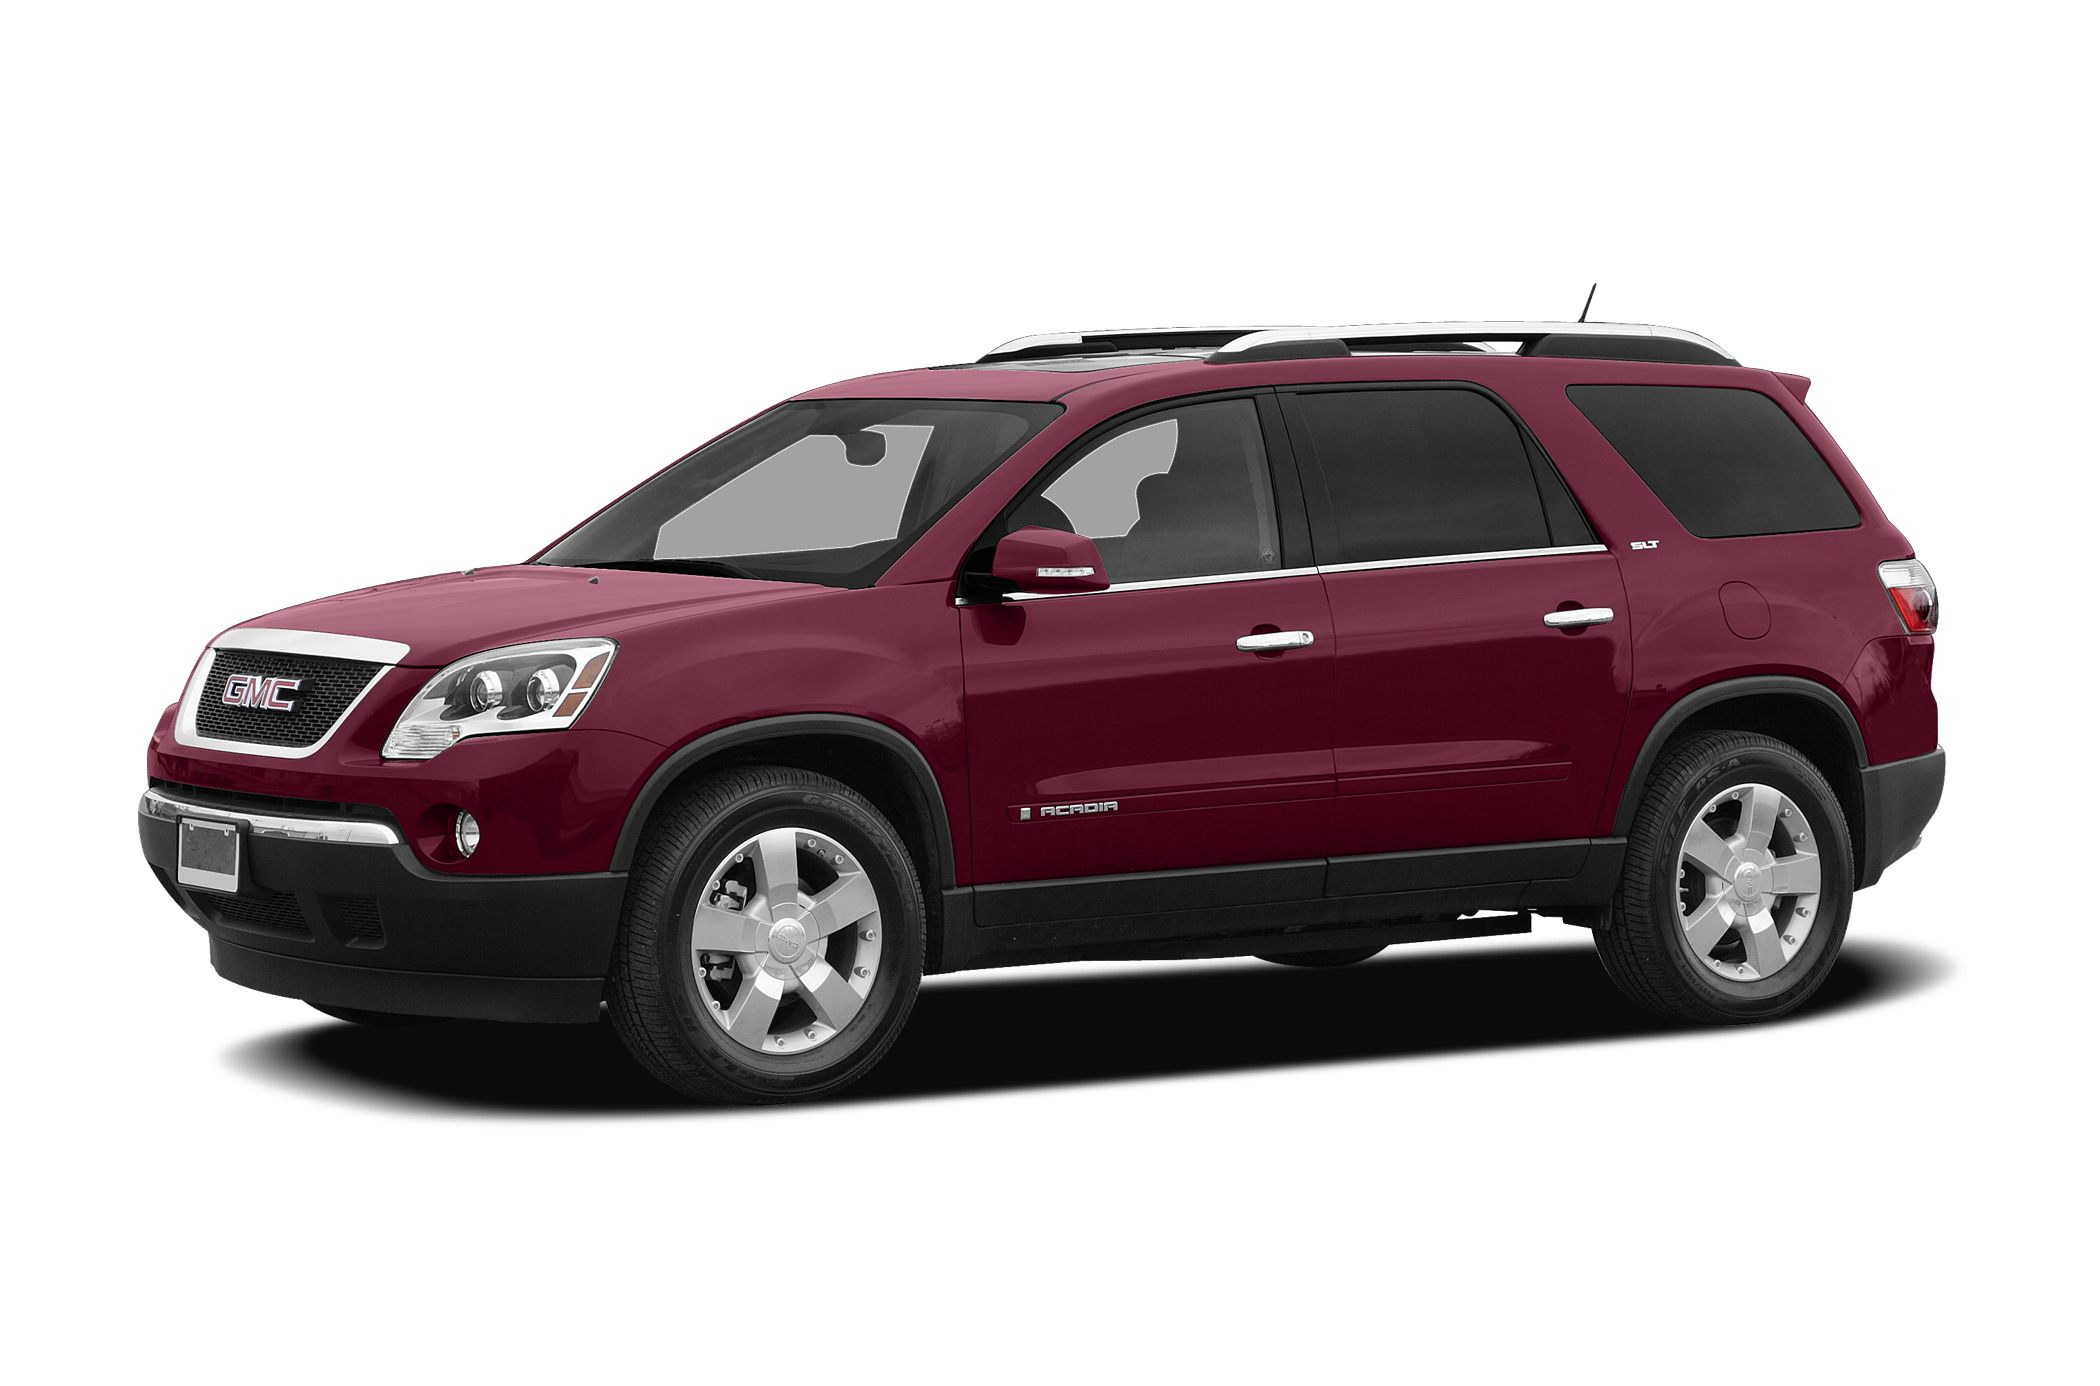 2008 GMC Acadia SLT1 SUV for sale in Jeffersonville for $16,326 with 85,274 miles.